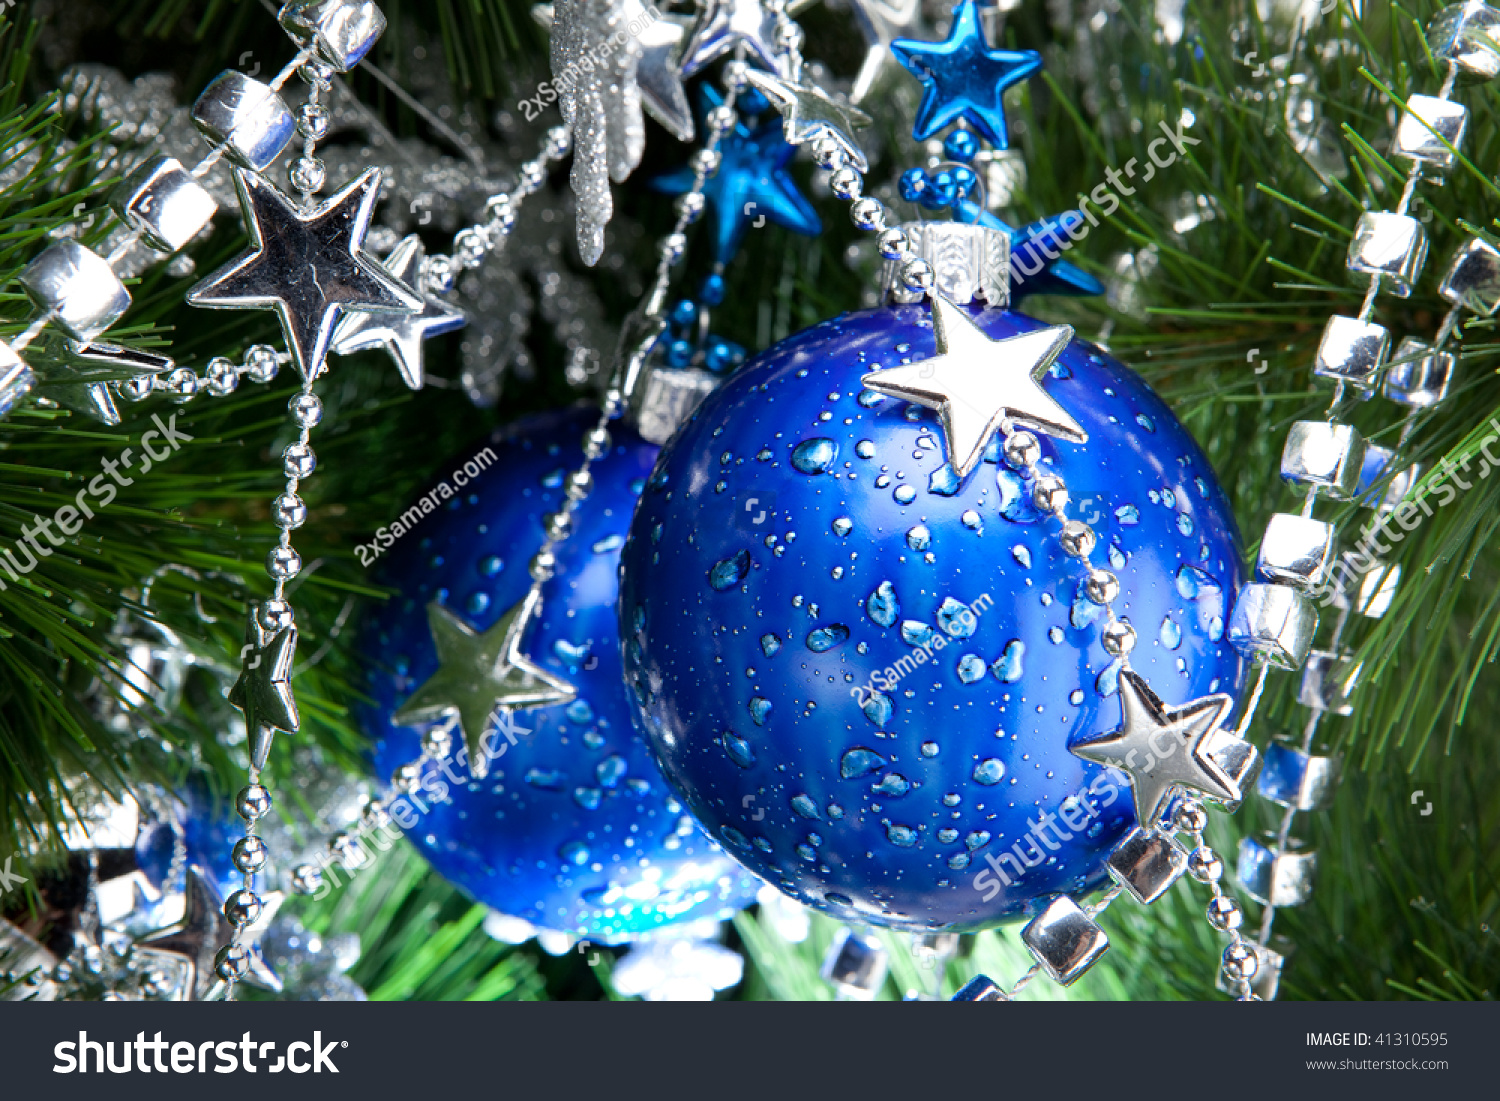 Blue Bauble With Silver Decoration On The Christmas Tree